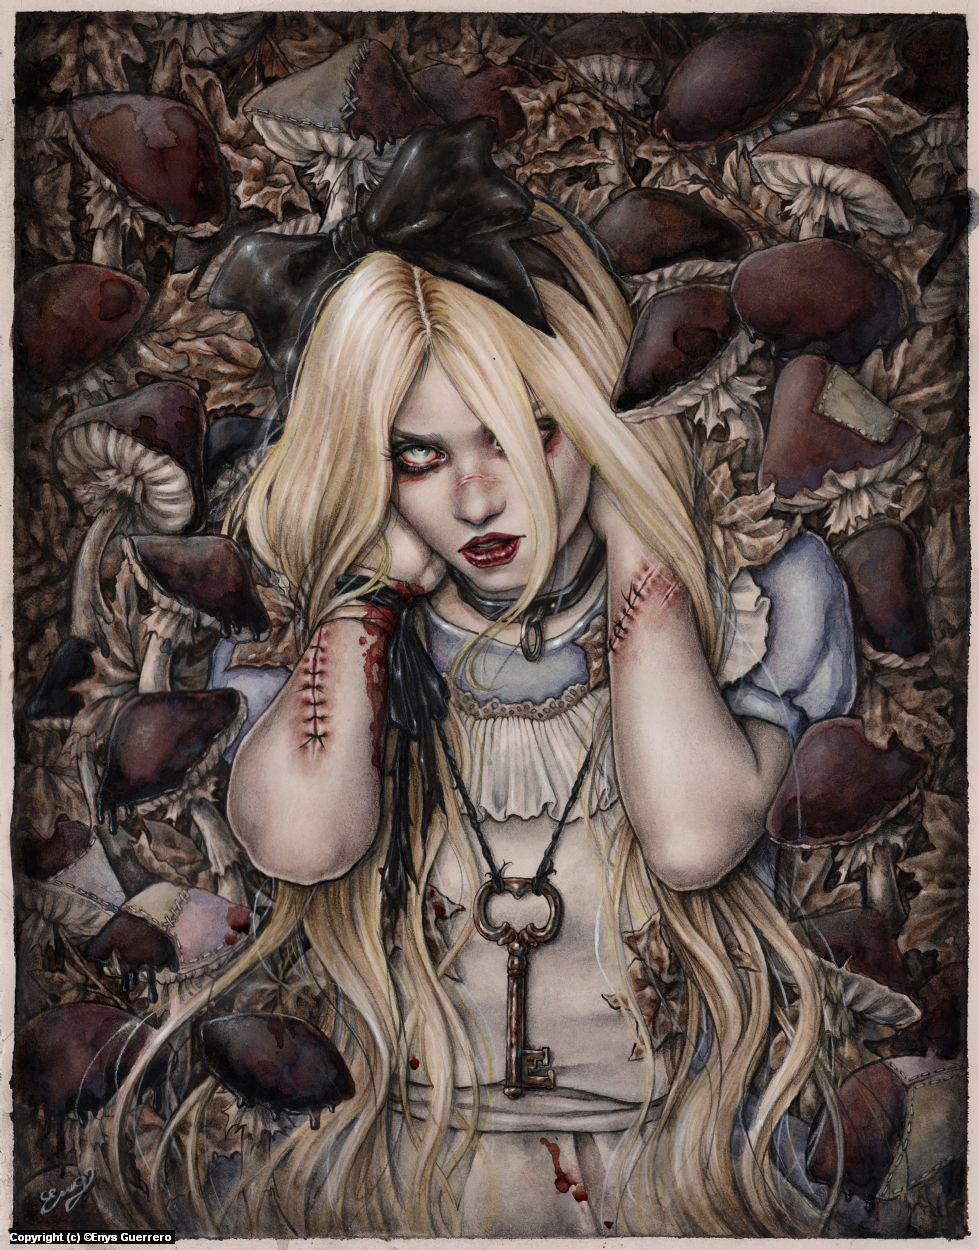 Not Your Alice  Artwork by Enys Guerrero